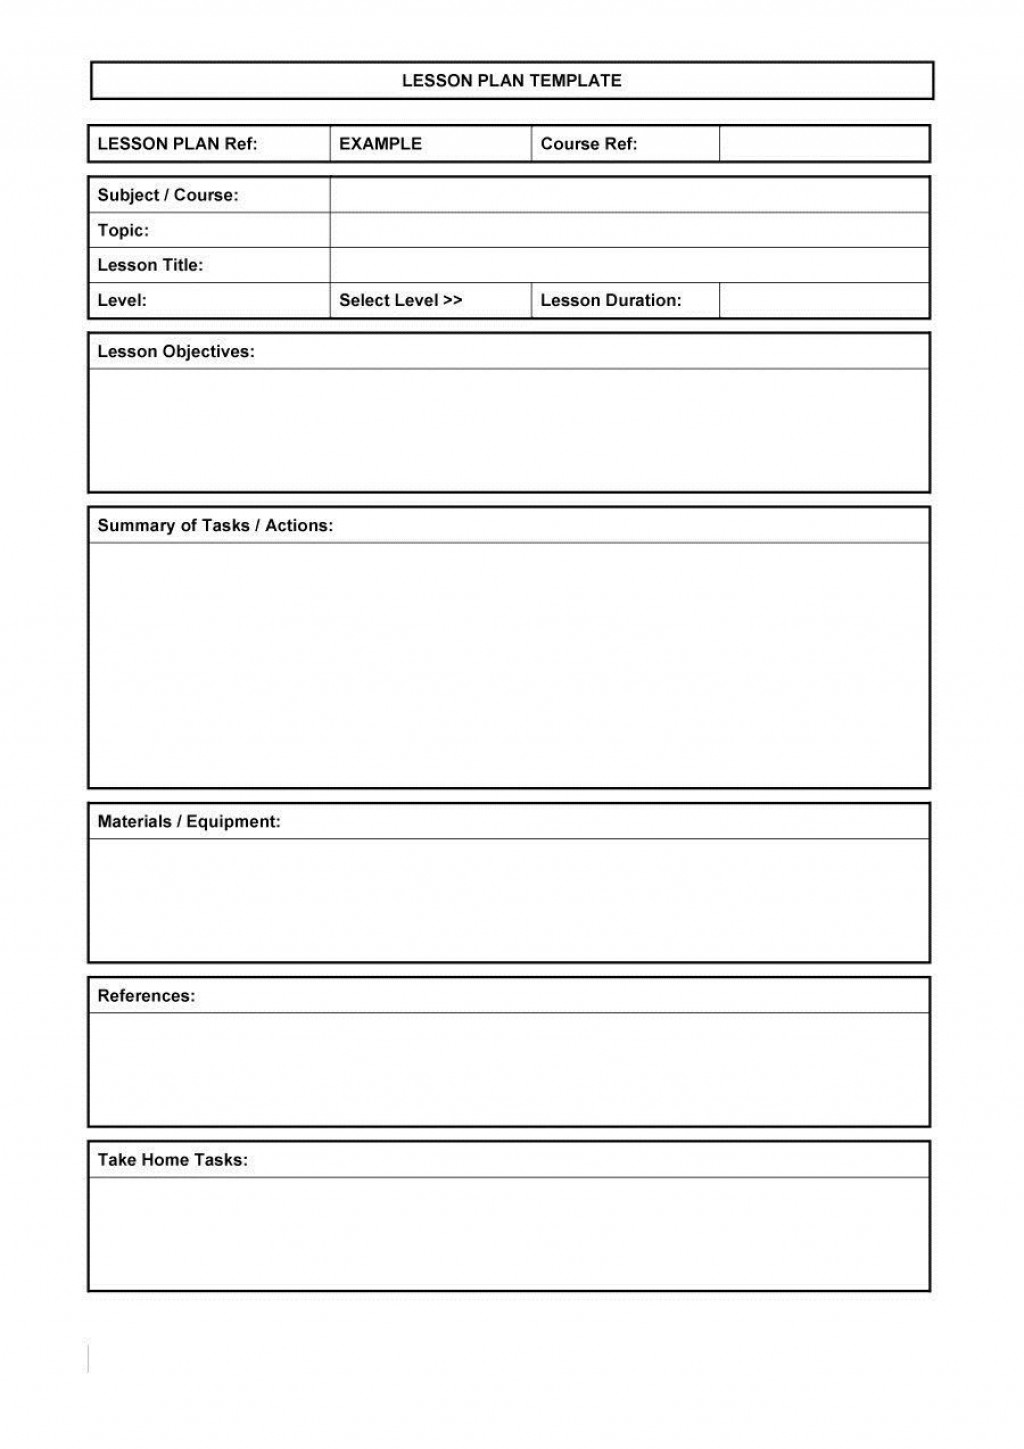 002 Magnificent Lesson Plan Template Excel Free Highest Quality Large